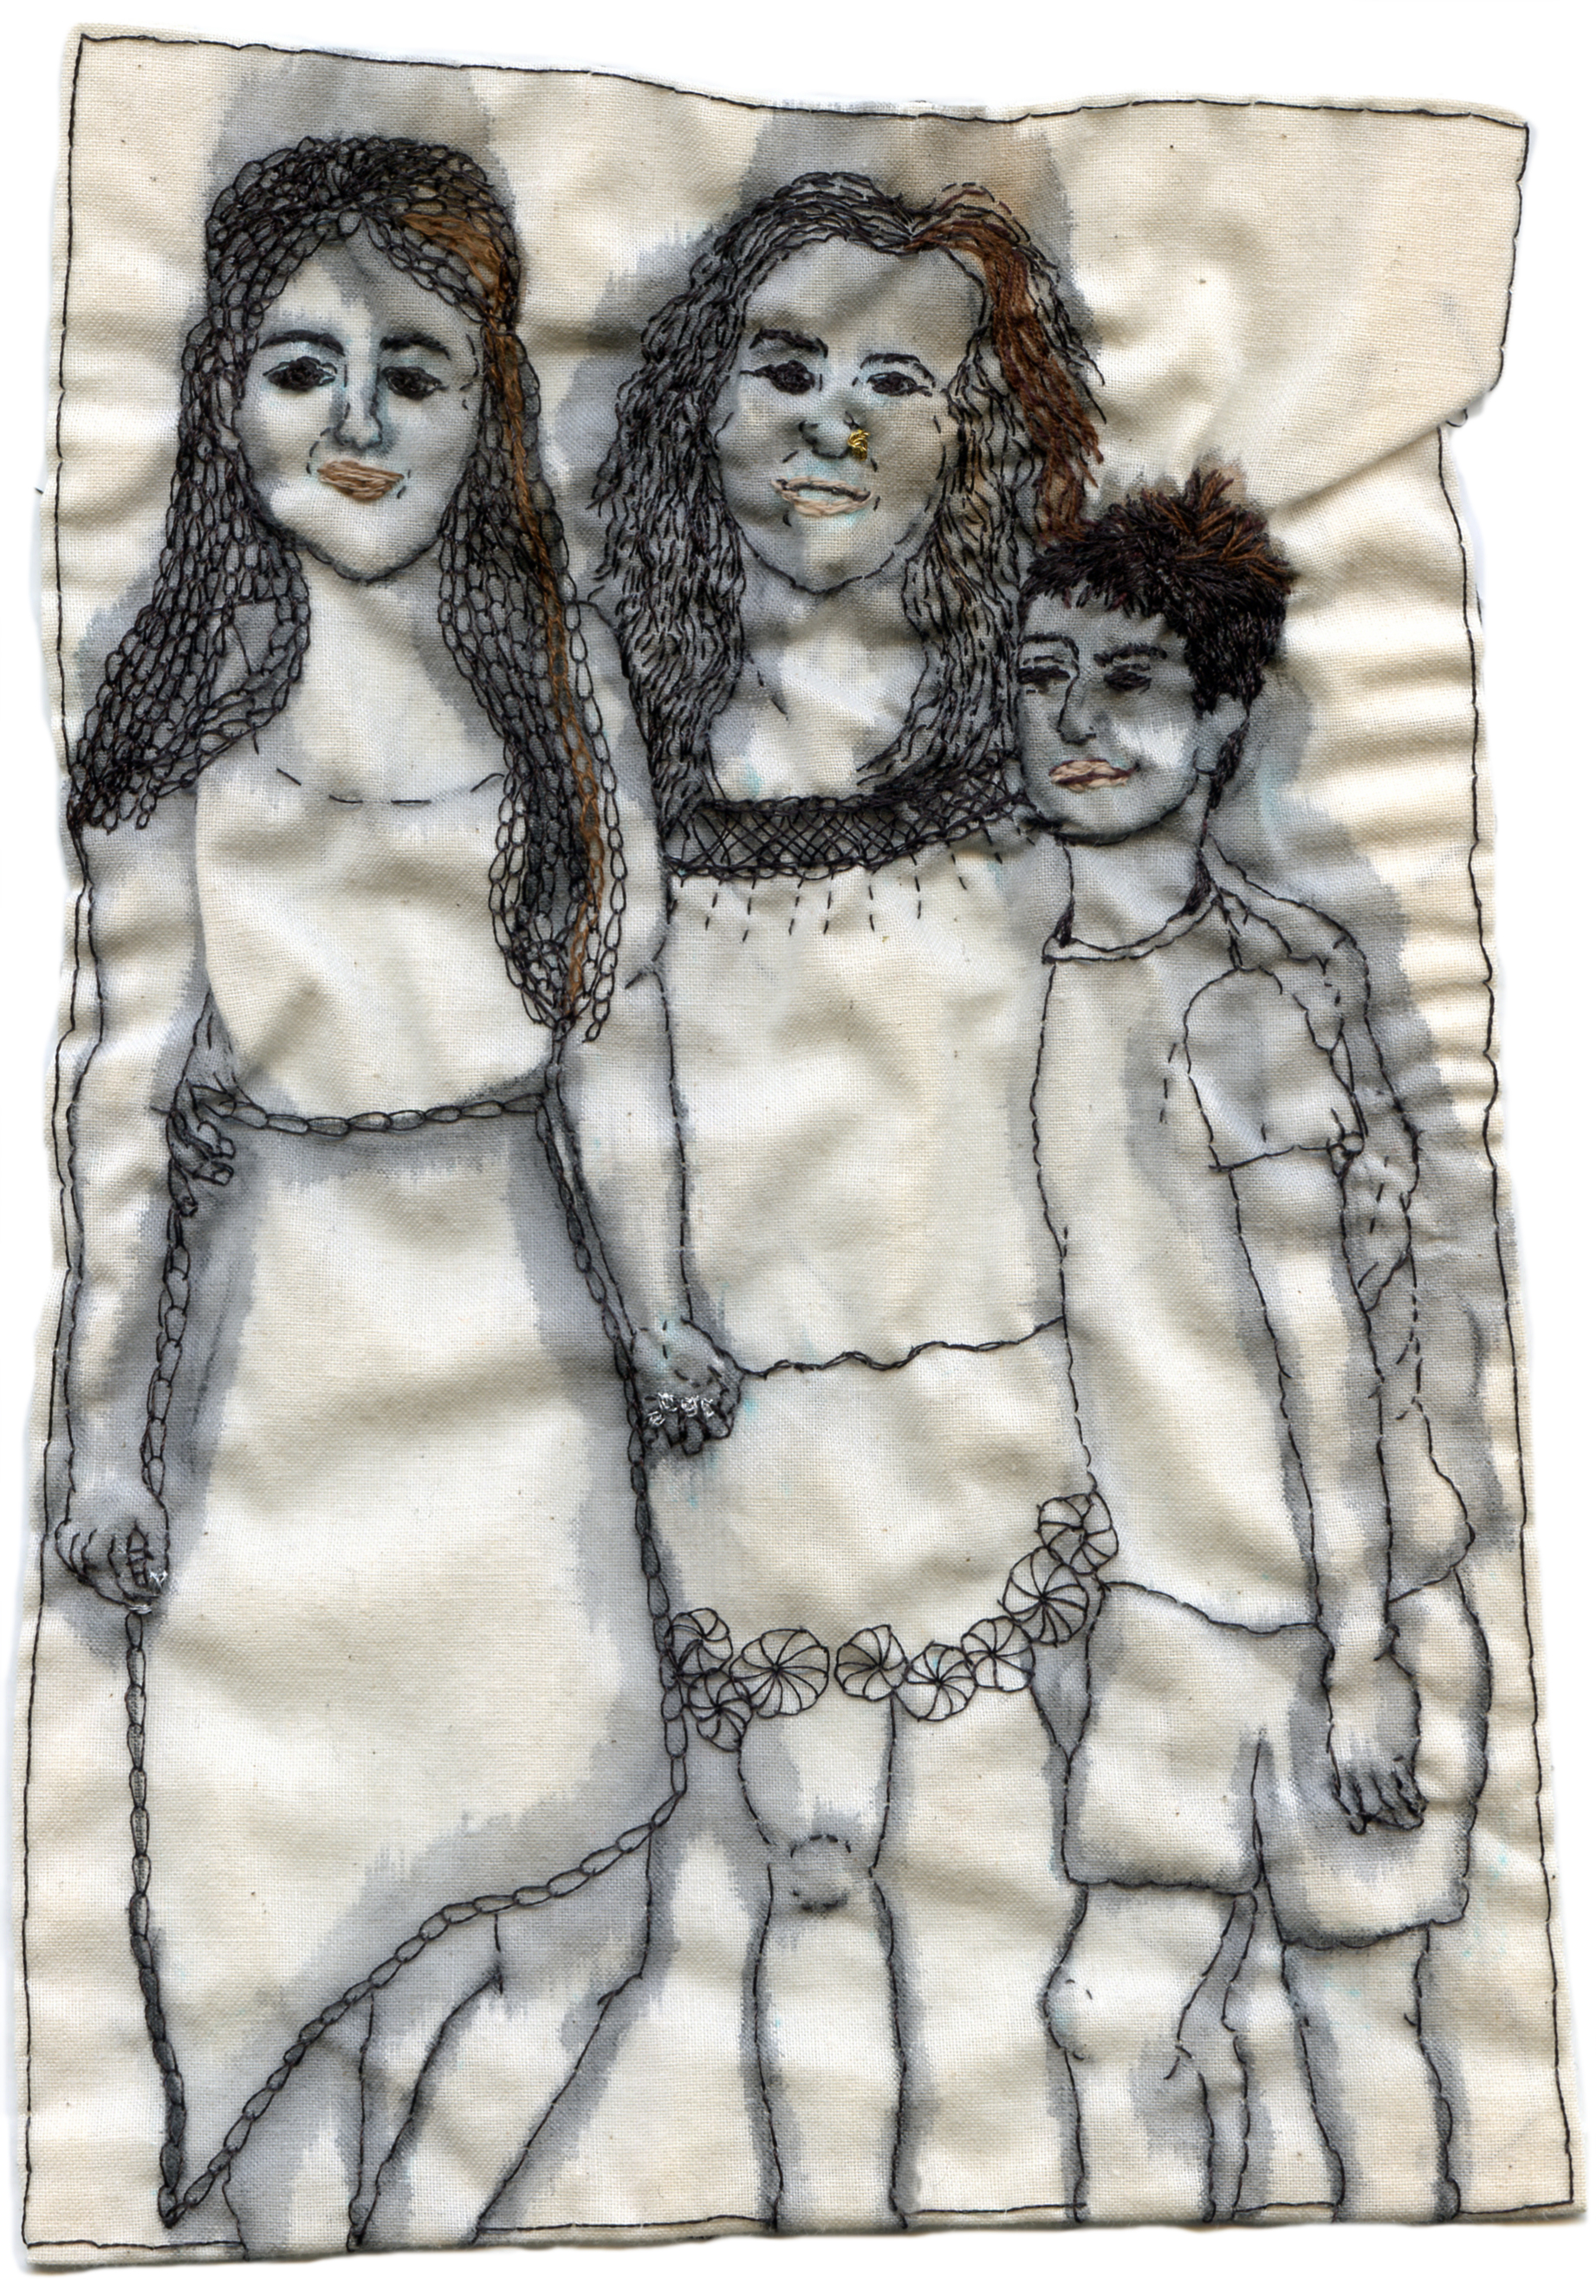 """Cynthia, Kaya, Marcus."" Embroidery and watercolor on fabric. Custom piece for Cynthia Alberto, Weaving Hand director and founder. 2013. 8.5"" x 5.5"" x 0.25"""